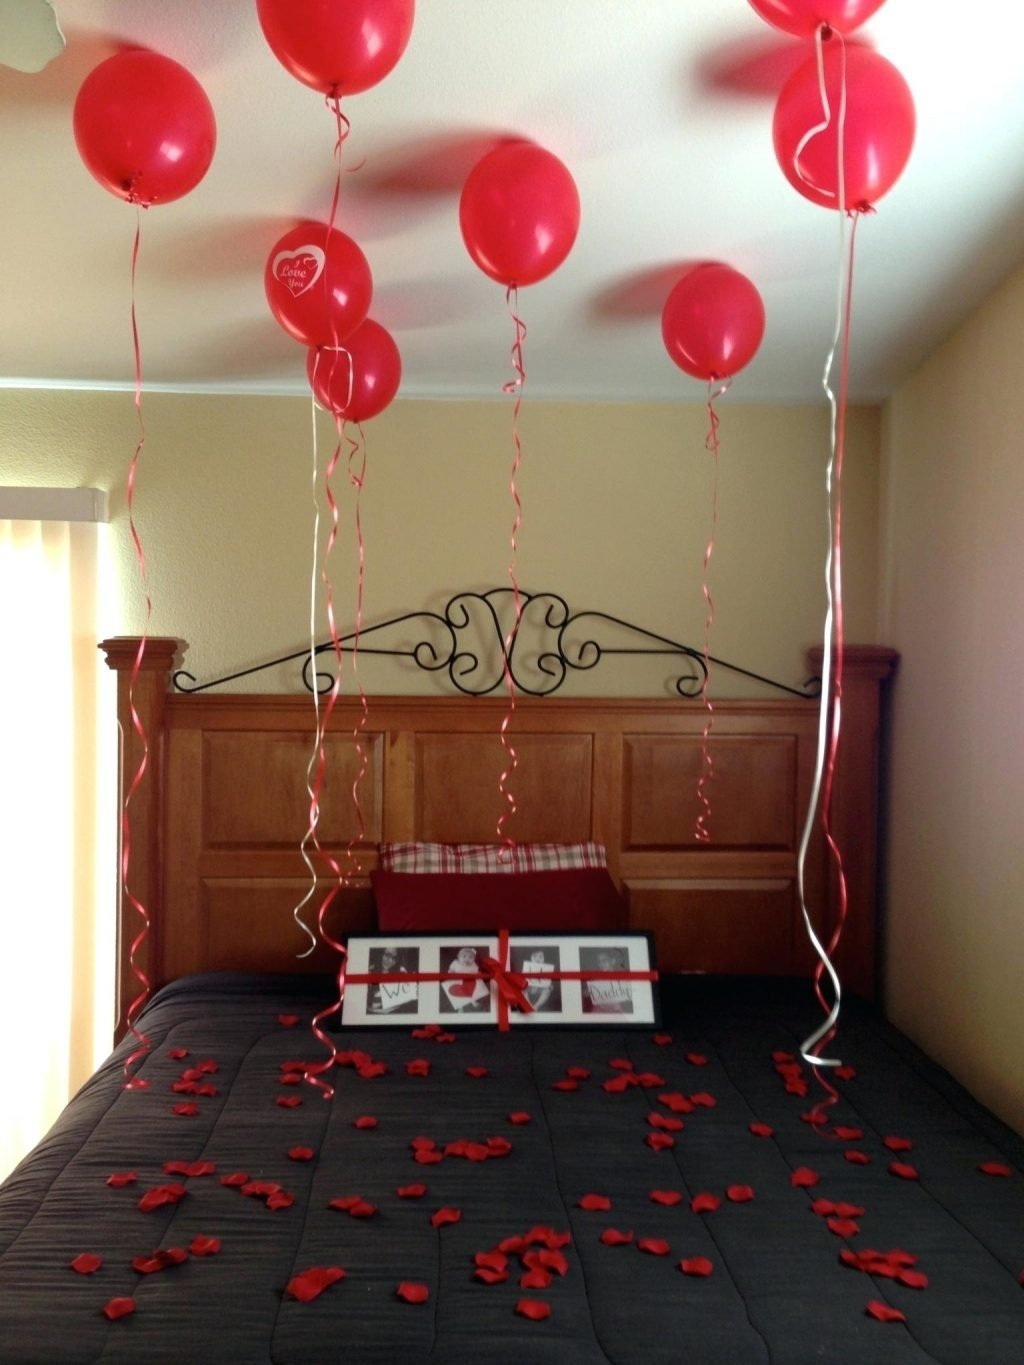 10 Unique Romantic Ideas For Valentines Day For Her valentines day romantic ideas bed decorating for on romantic 4 2020